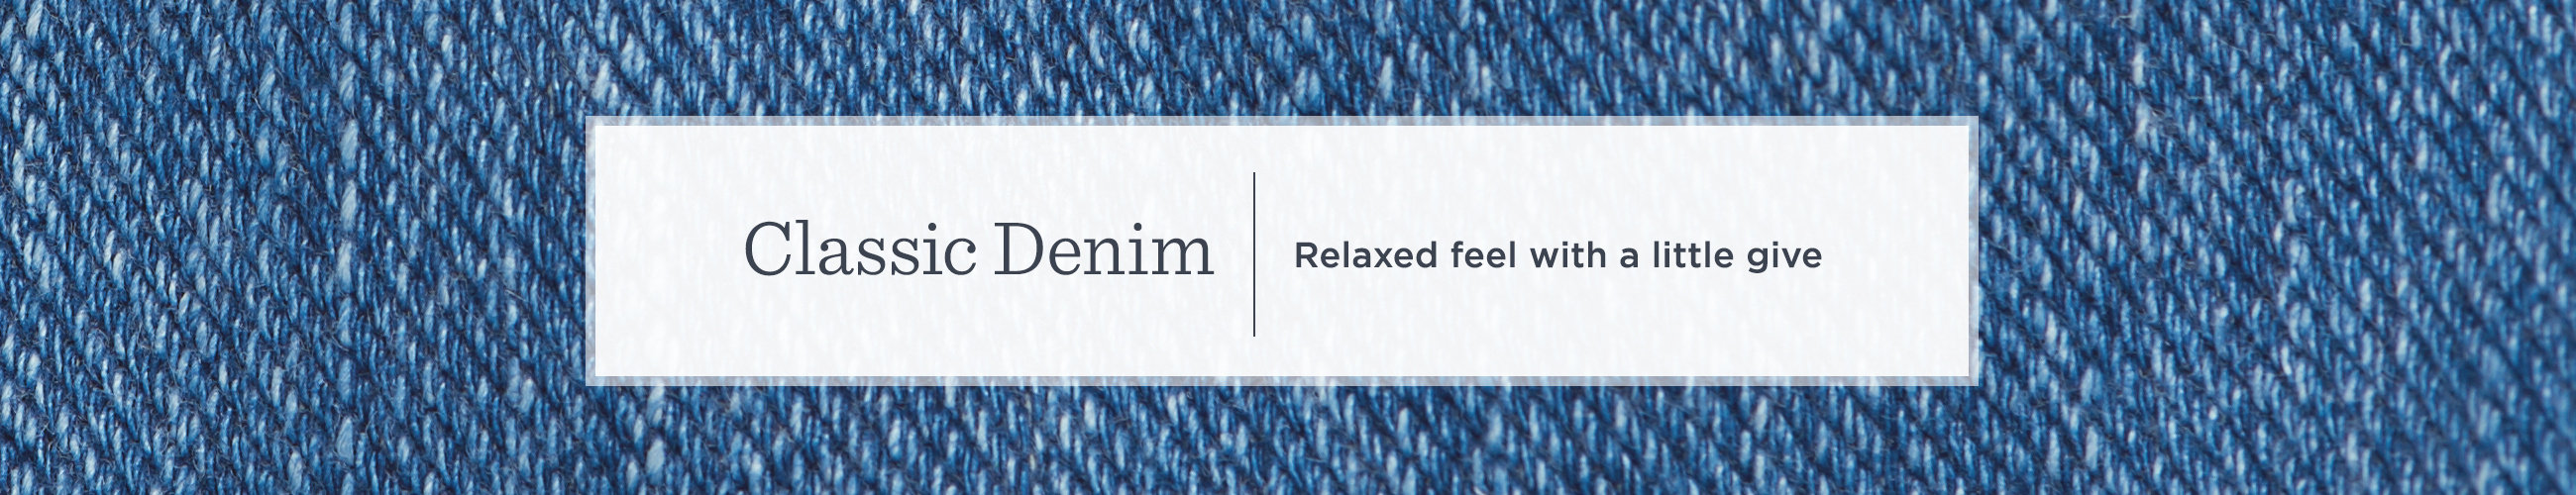 Classic Denim — Relaxed feel with a little give